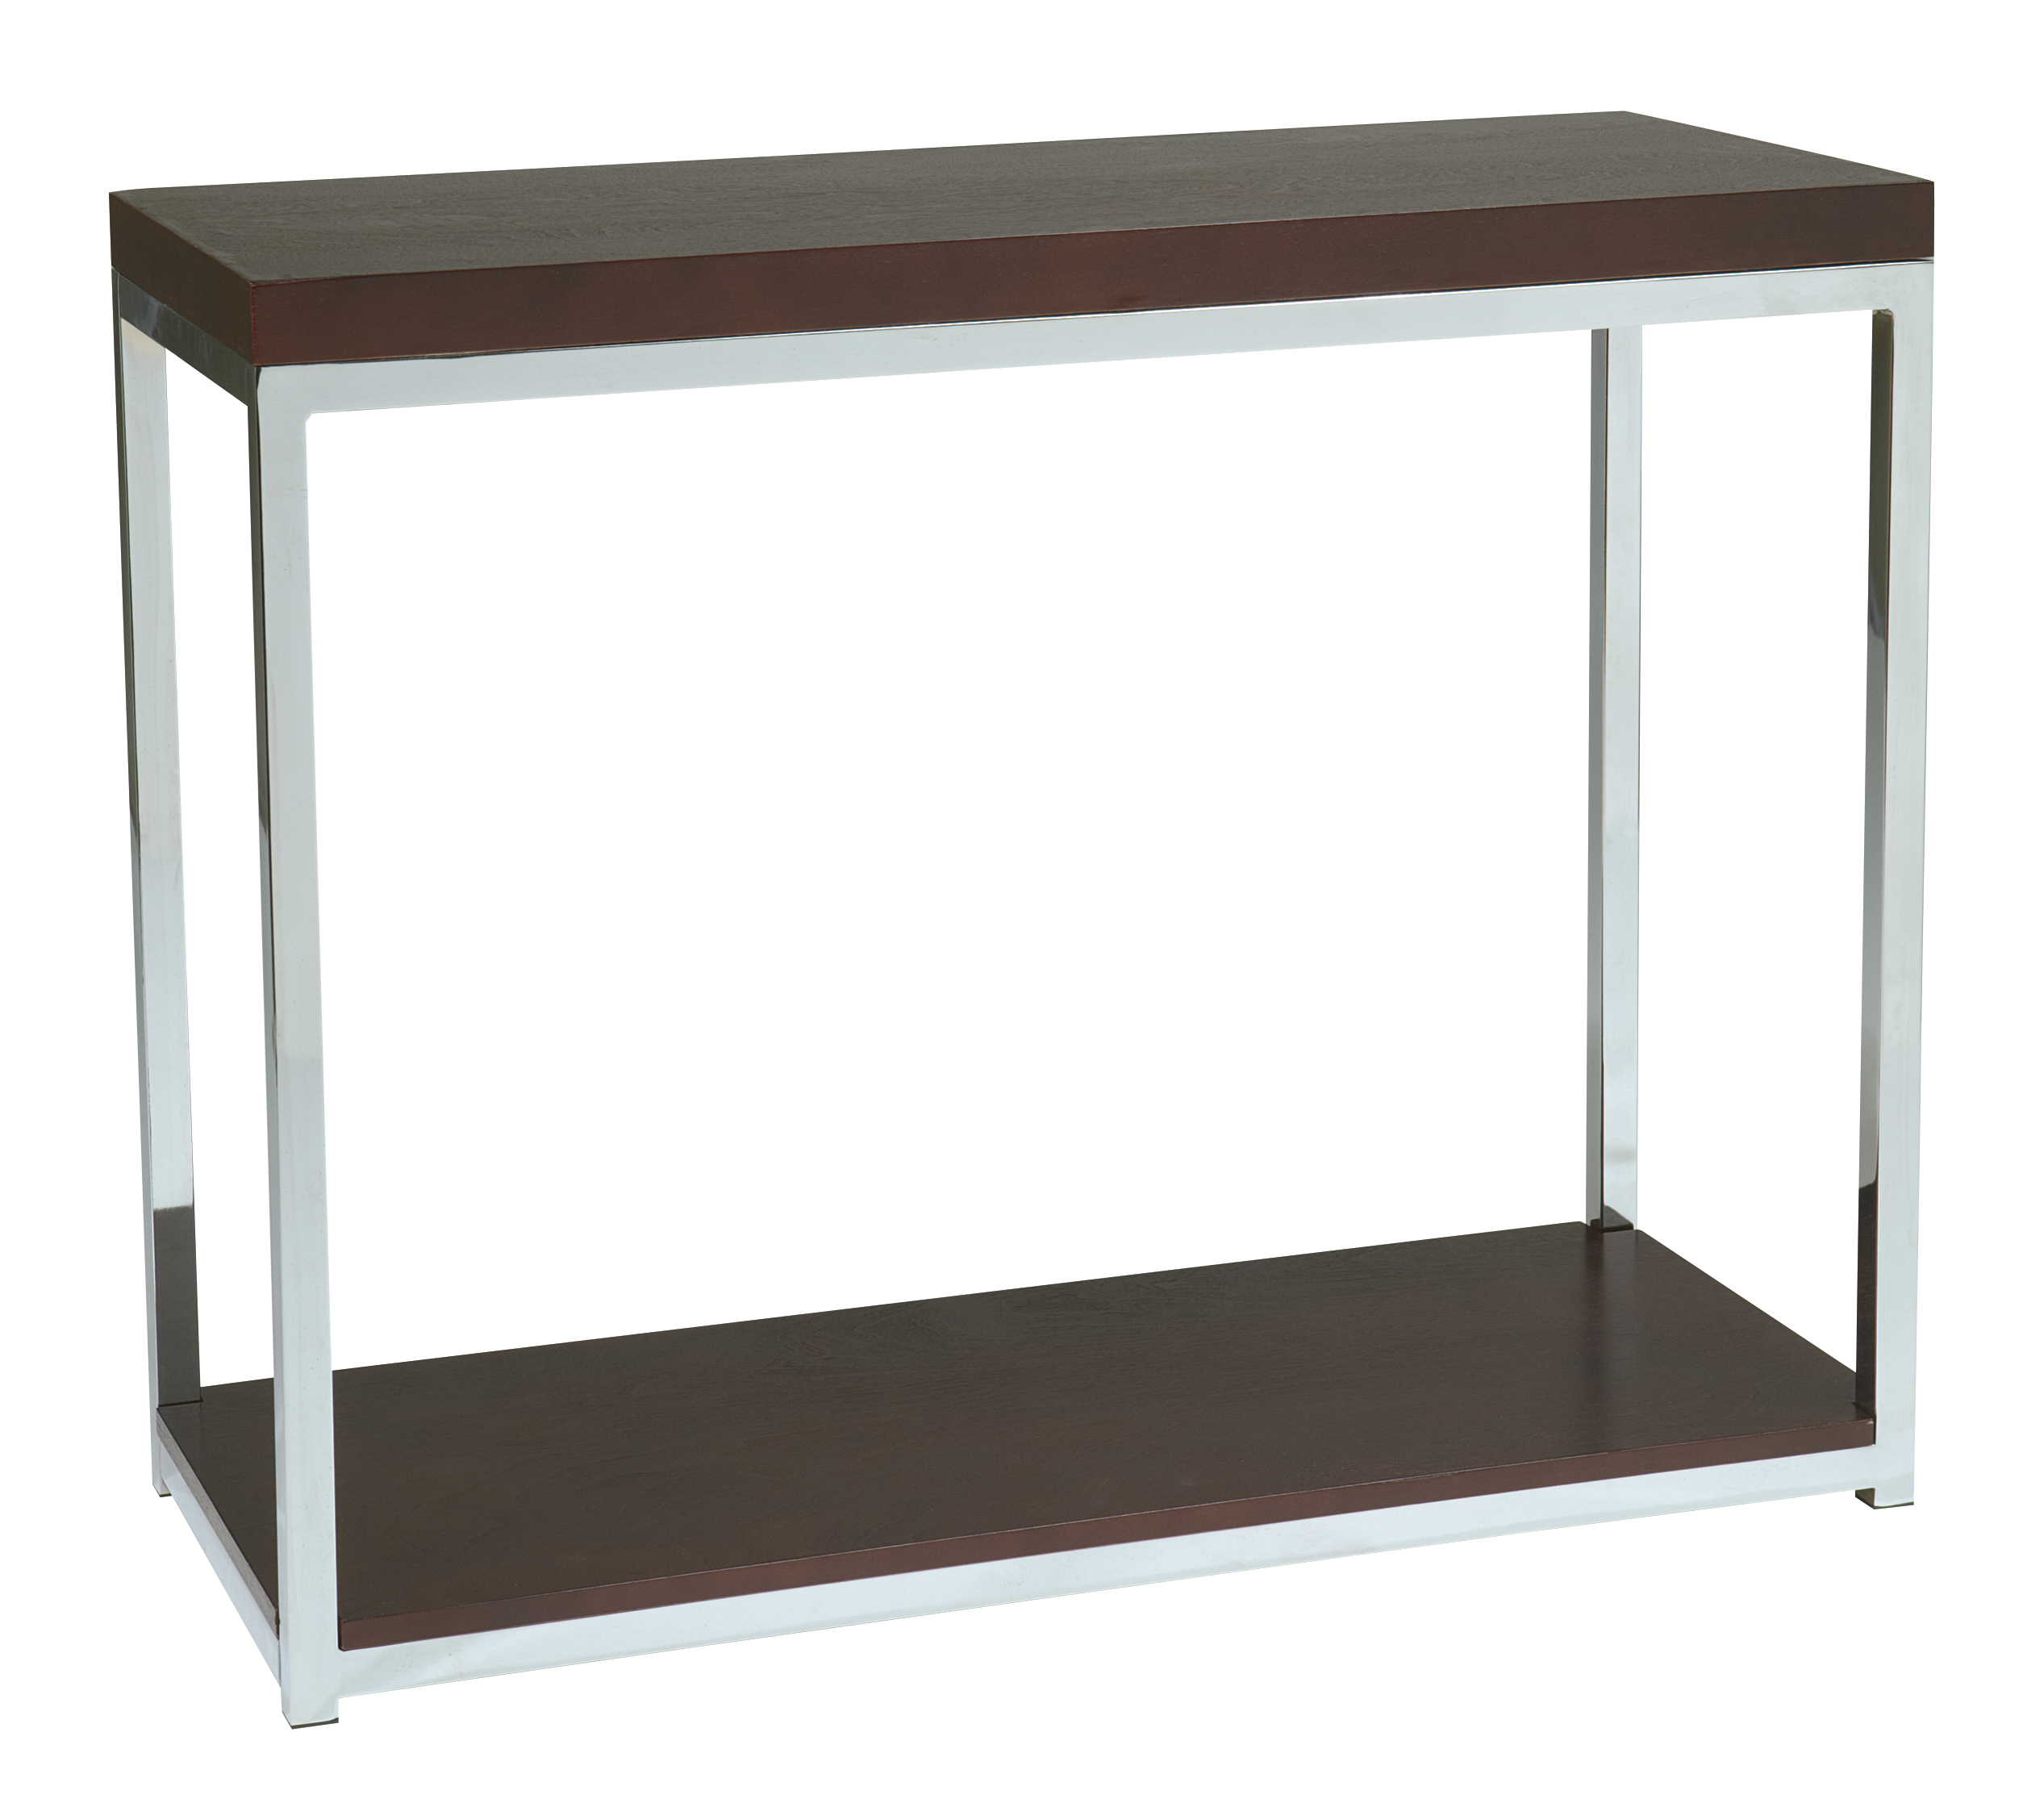 modern corner accent table with avenue six yield inch furniture stainless frame design awesome using drawer and not sheldon robinson has subscribed credited from circular metal